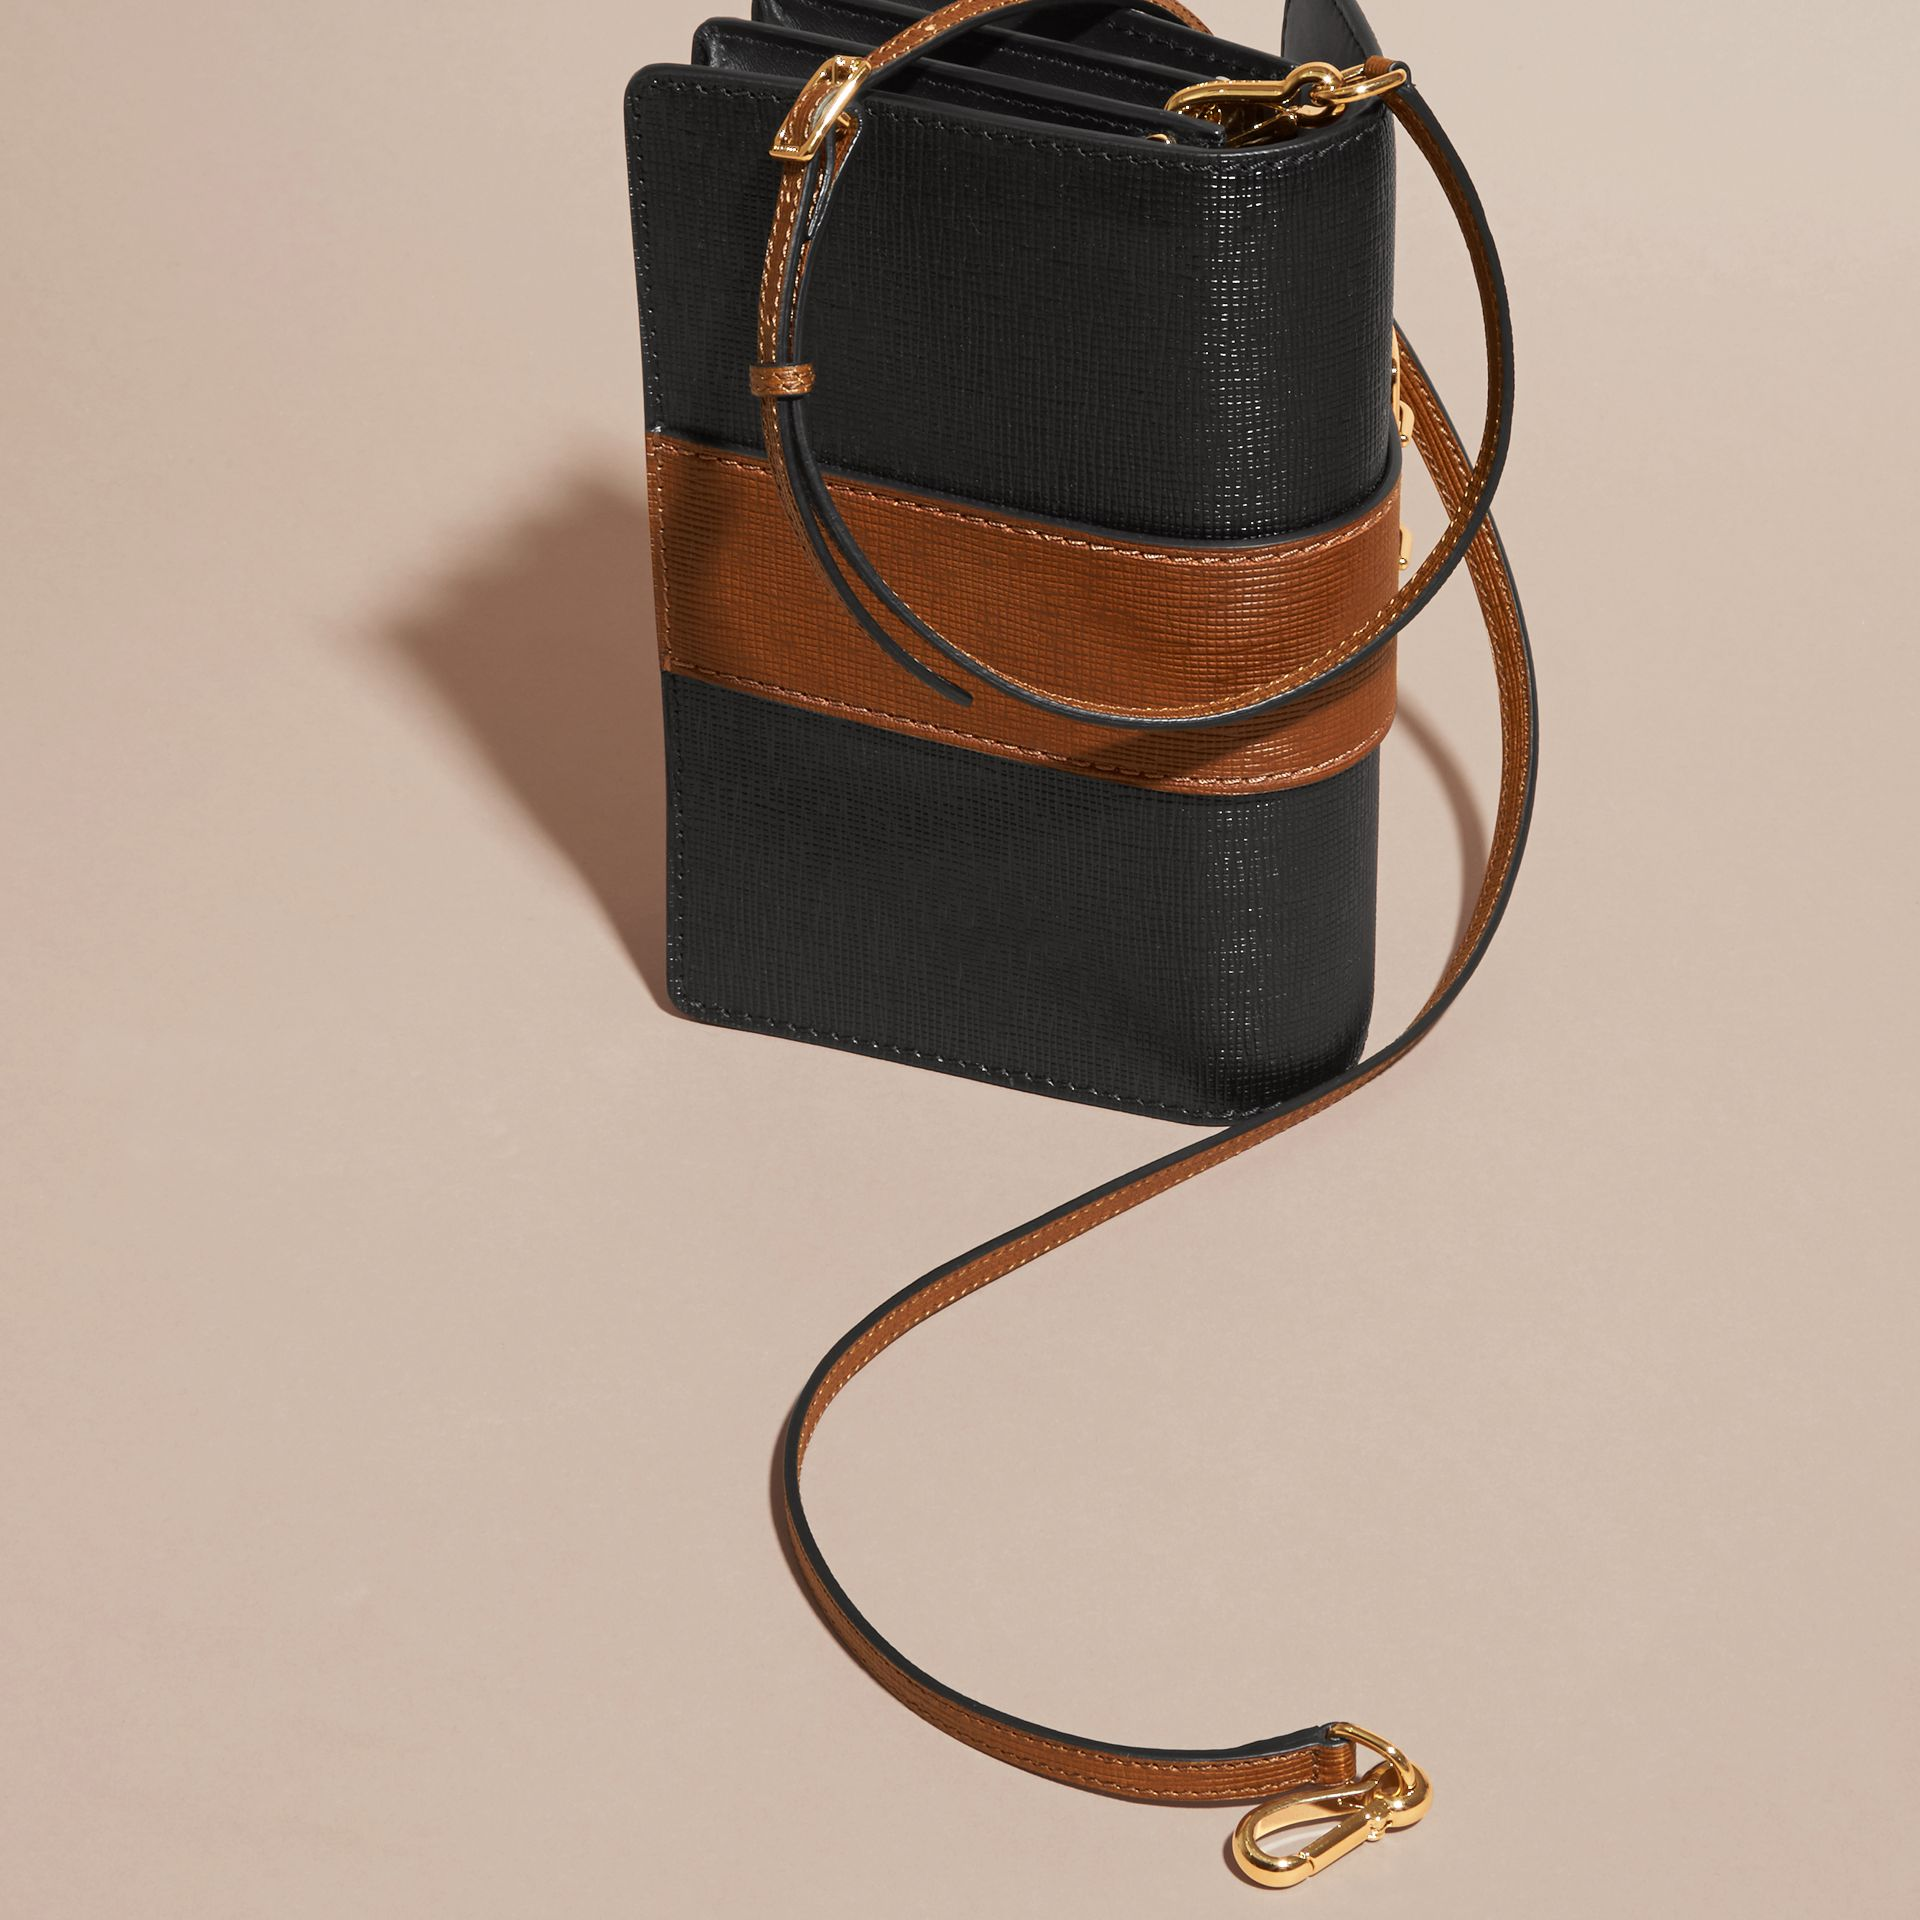 Black/tan The Medium Buckle Bag in Textured Leather Black/tan - gallery image 3